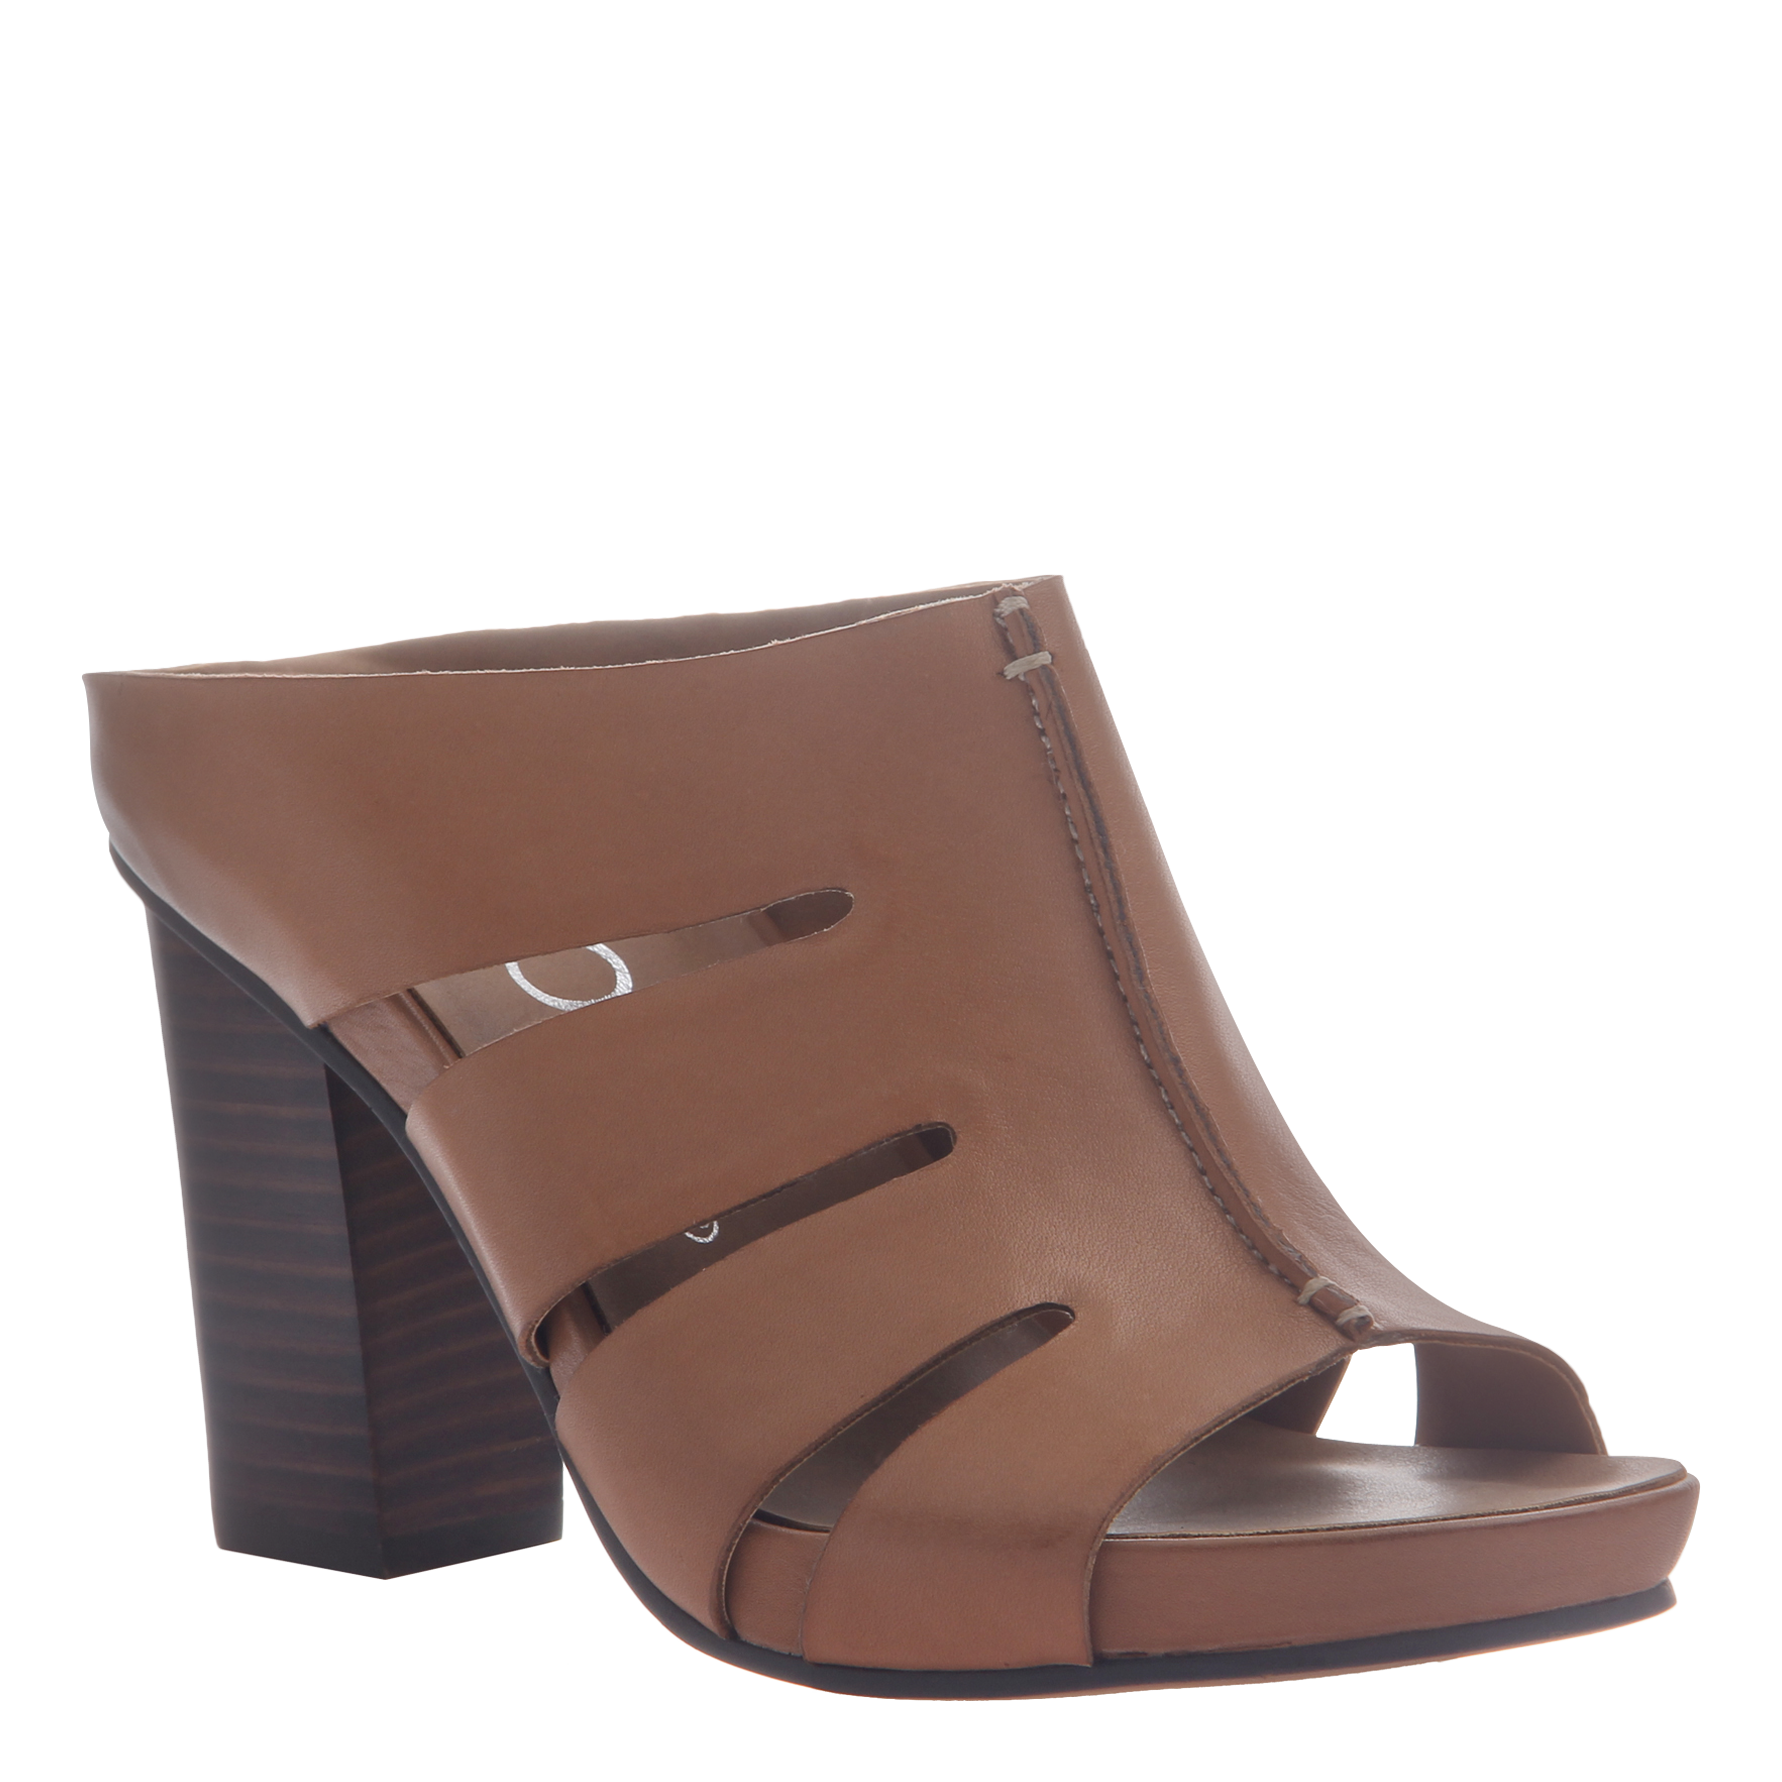 Nicole womens heeled sandal Delphine in brown leather